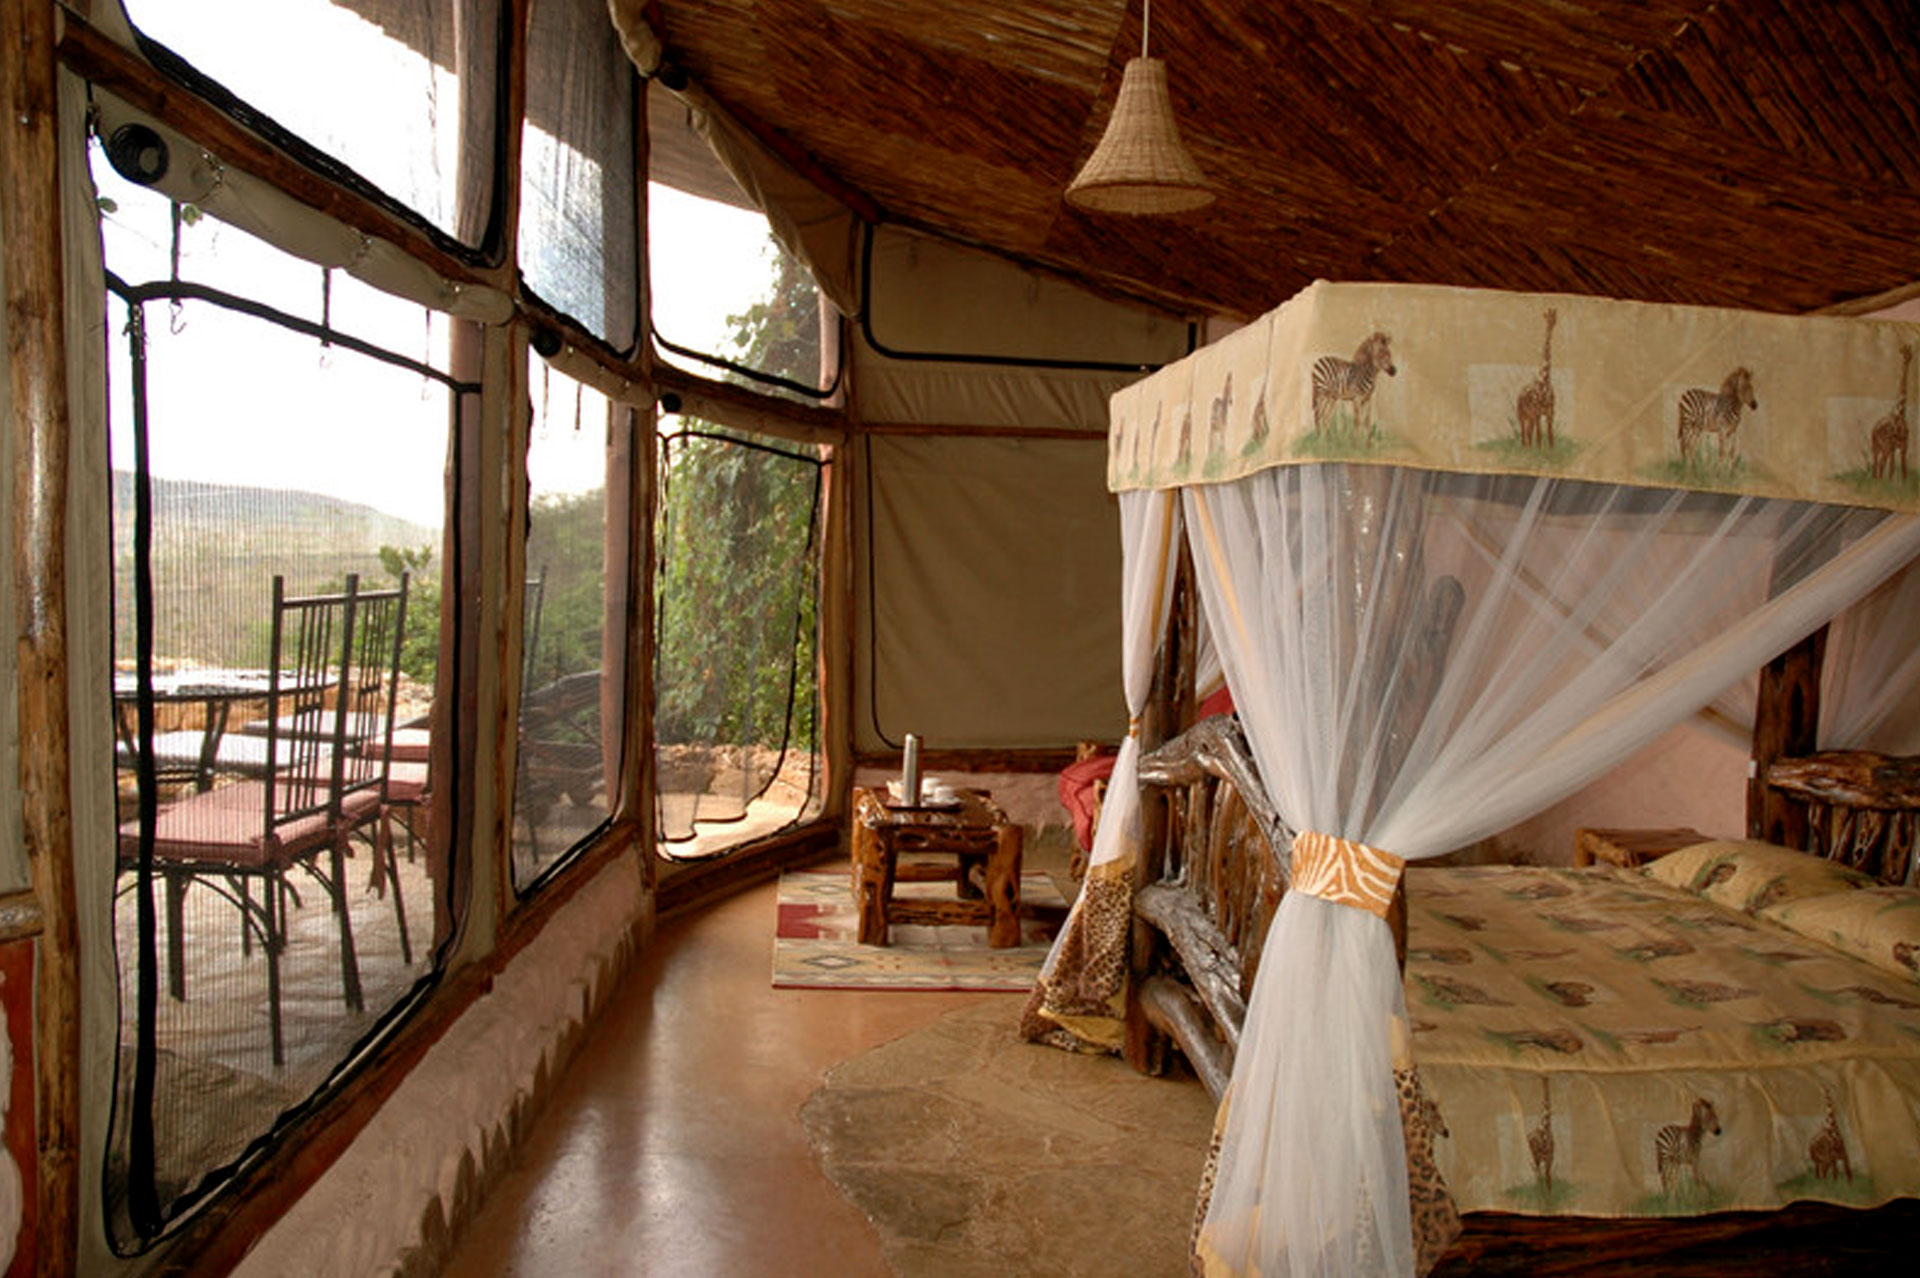 Diani_travel_center_tours_and_safaris_diani_tours_and_safaris_3_days_tsavo_east_and_west--